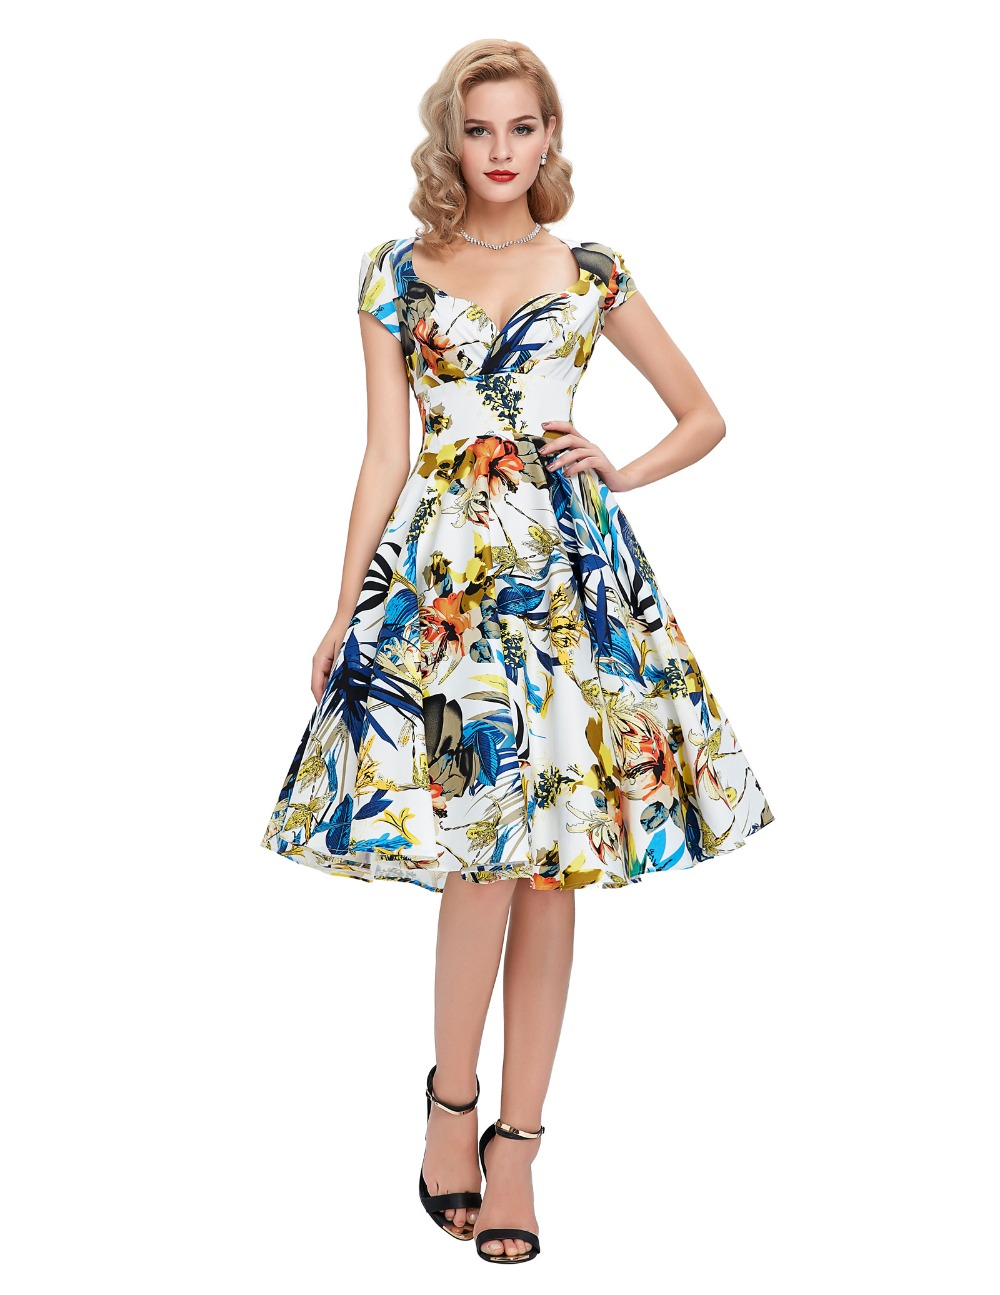 Assez Rockabilly Dress Casual Women Short Sleeve Cotton Vestidos Retro  IB18